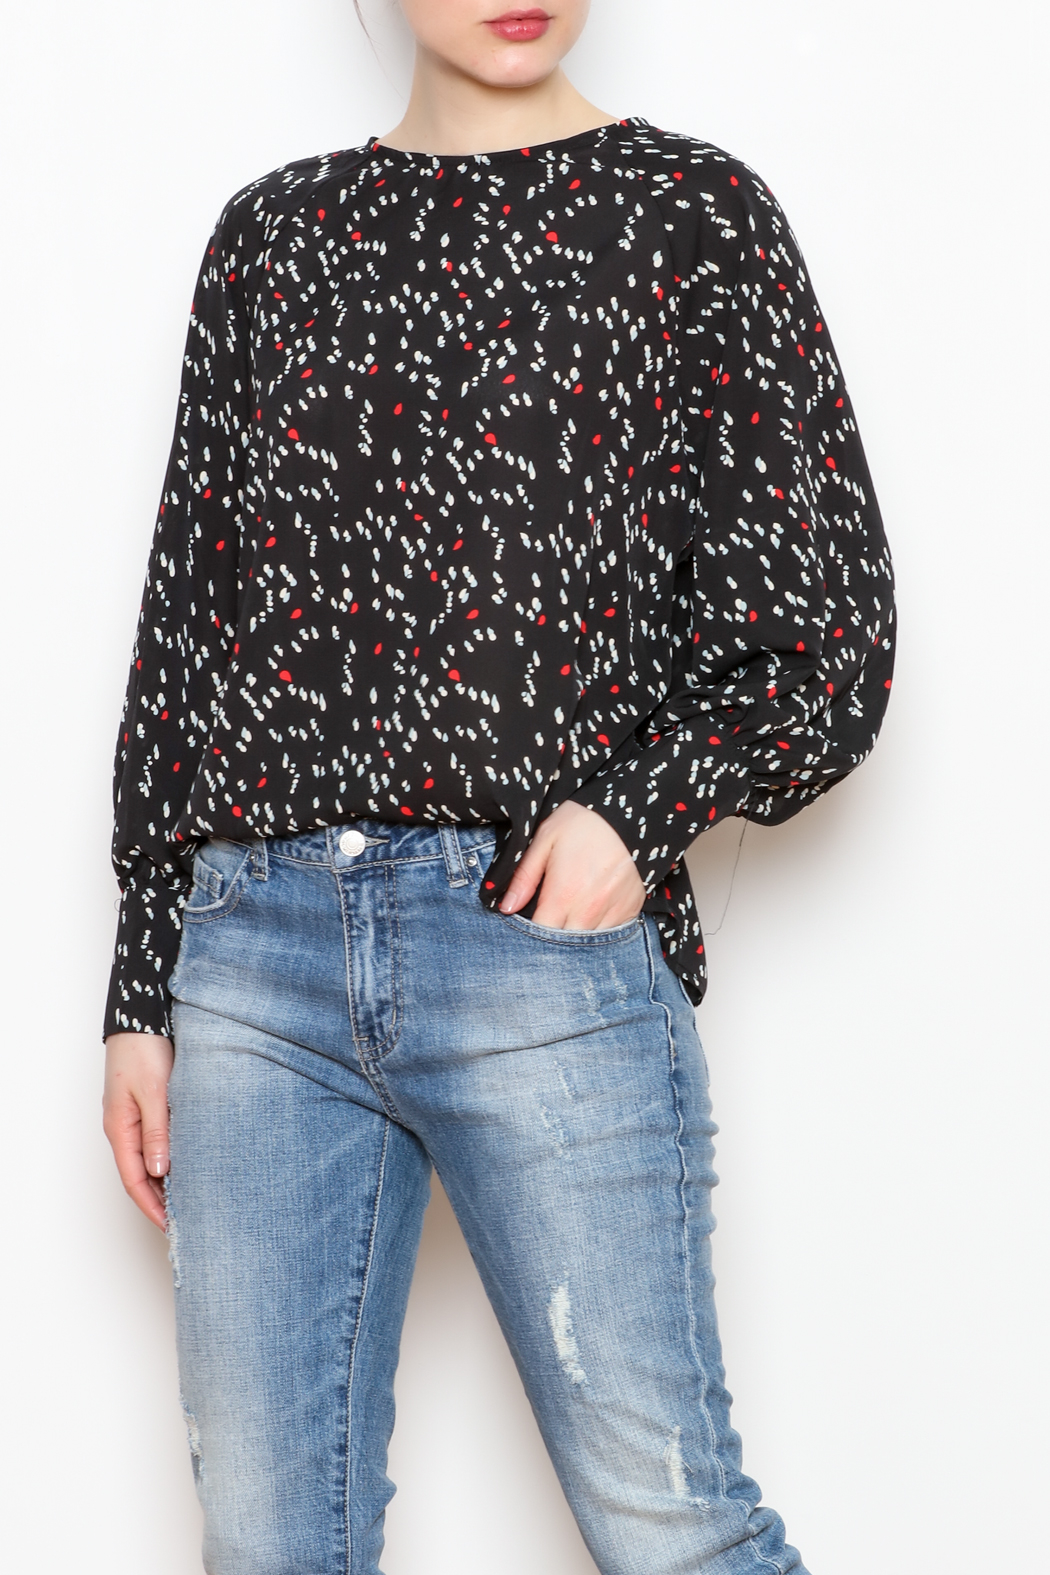 NU New York Back Button Printed Blouse - Main Image